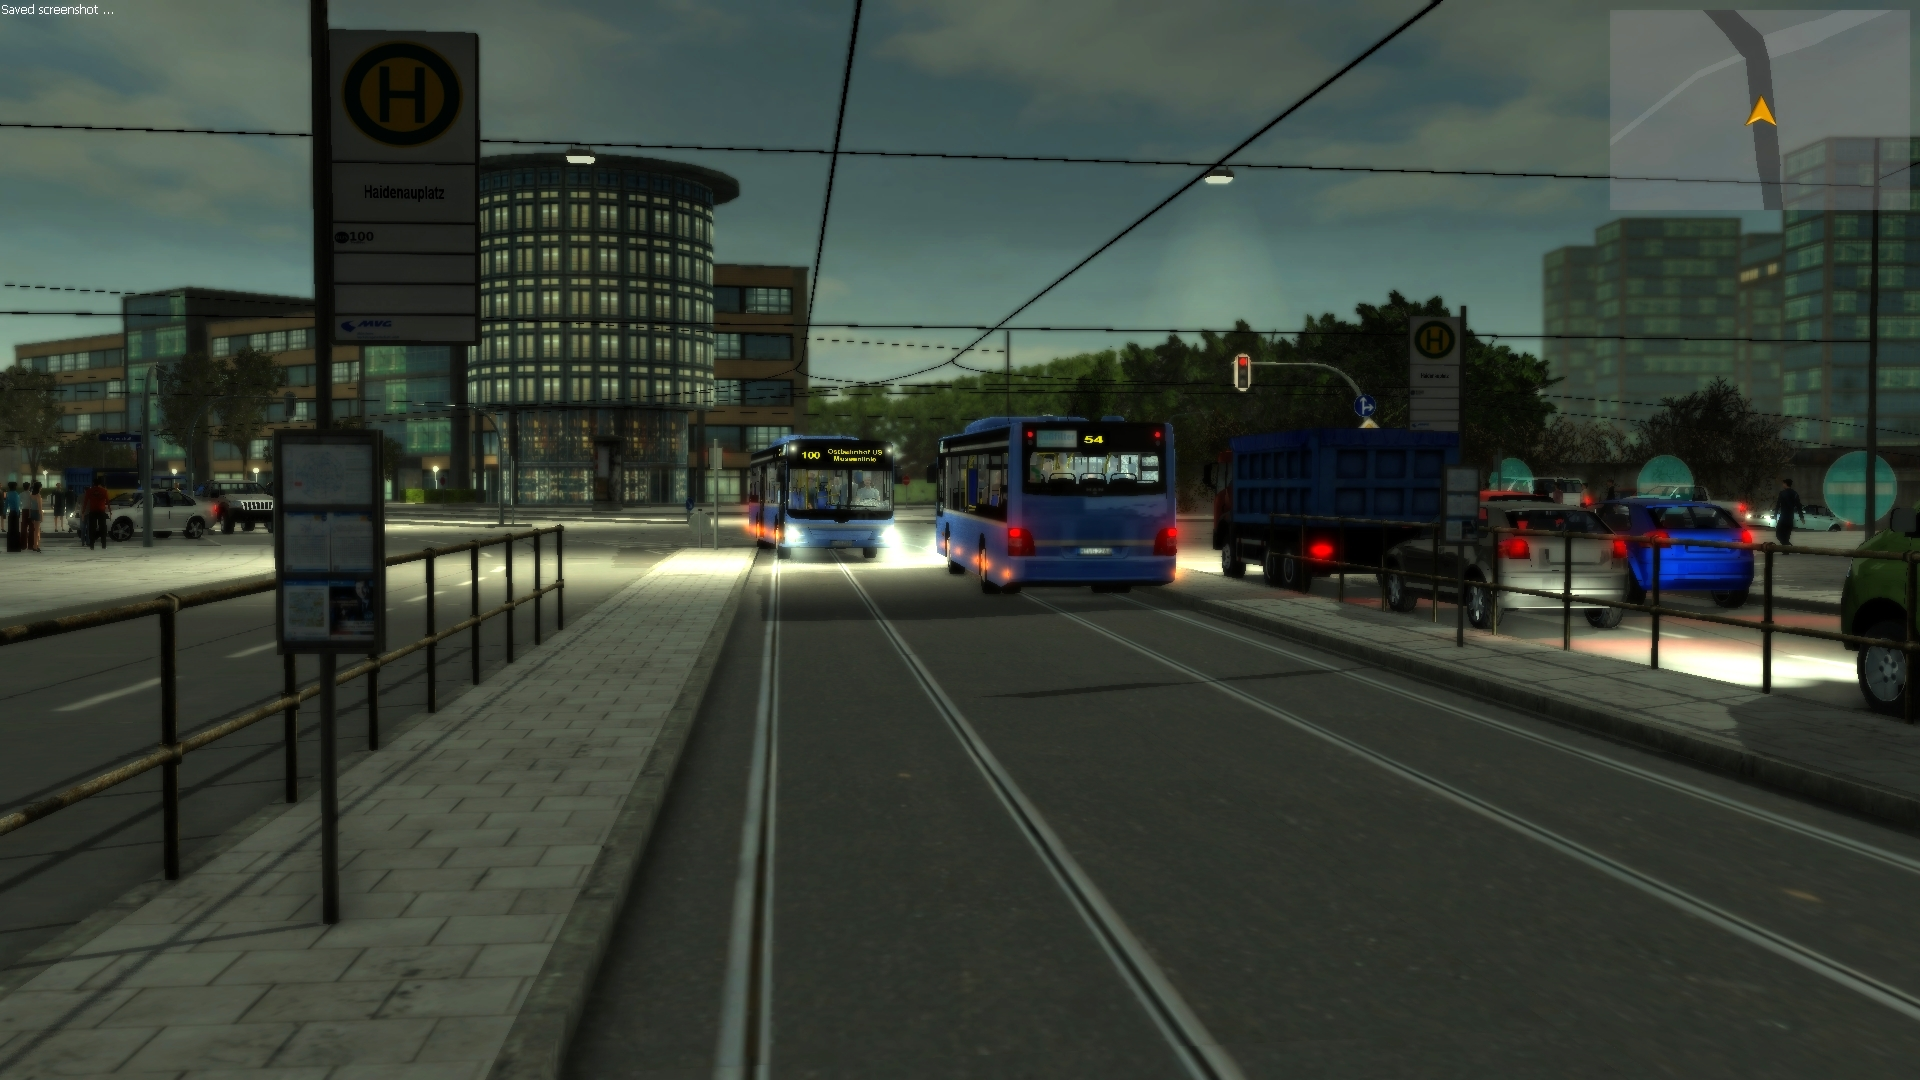 Amazon.com: City Bus Simulator Munich [Download]: Video Games